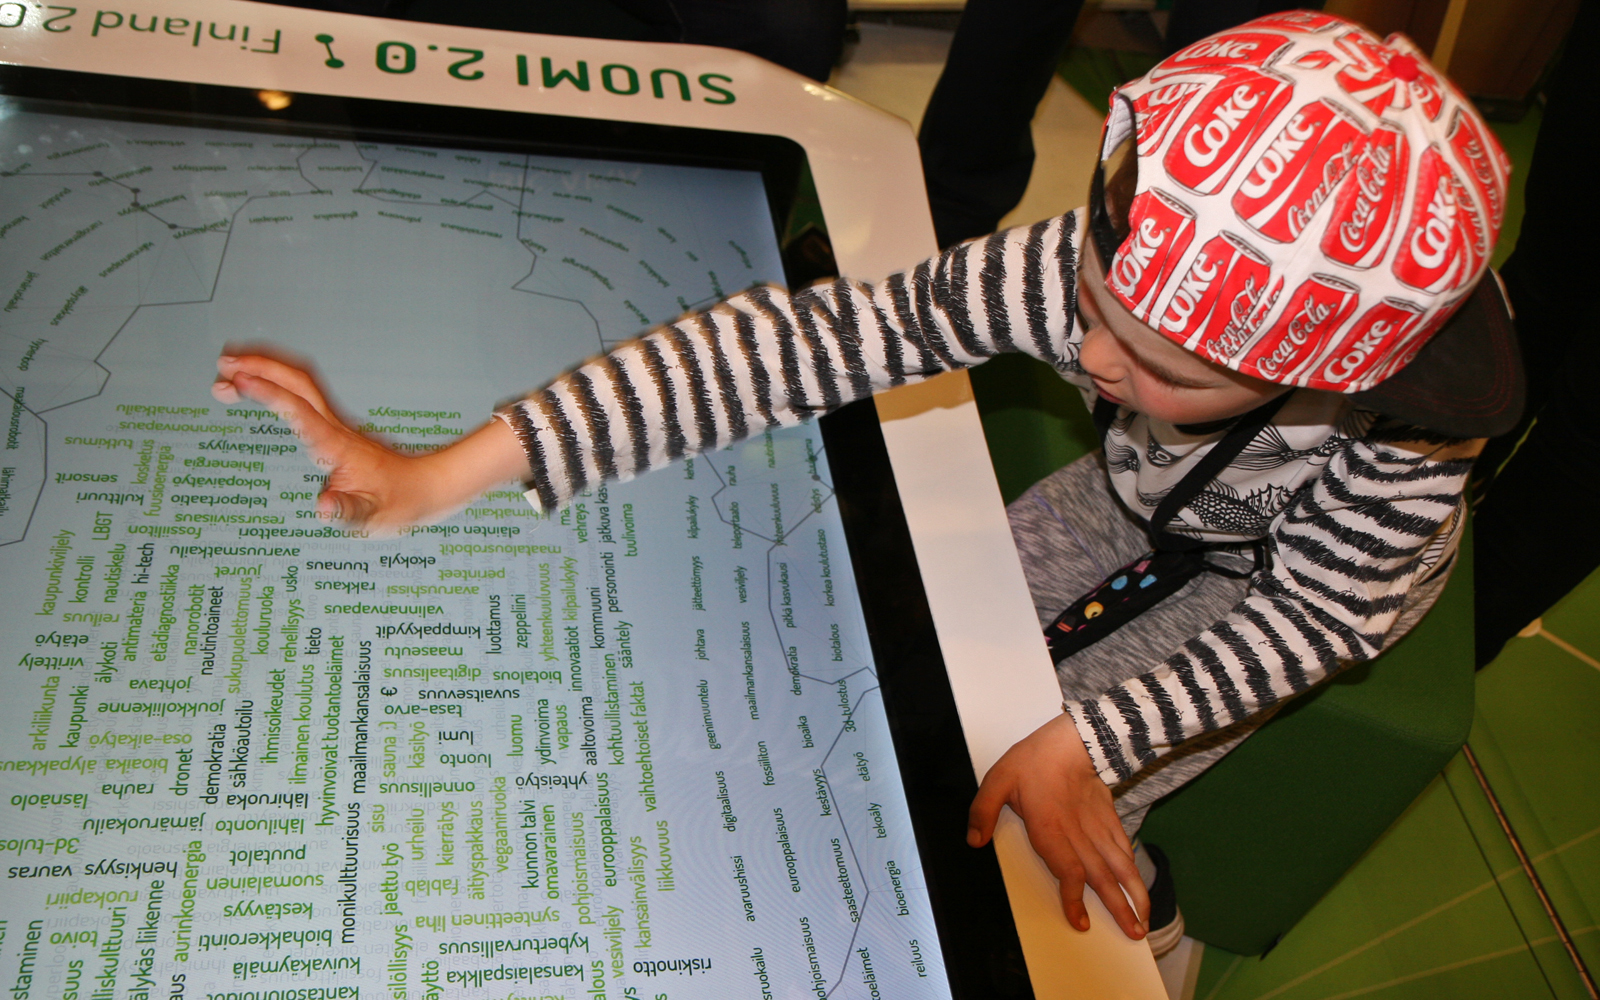 Visitors can choose and drag what they think are the most important words to the centre of the word cloud, thus helping to create a future vision for centenarian Finland. Photo: Anna Kauppi